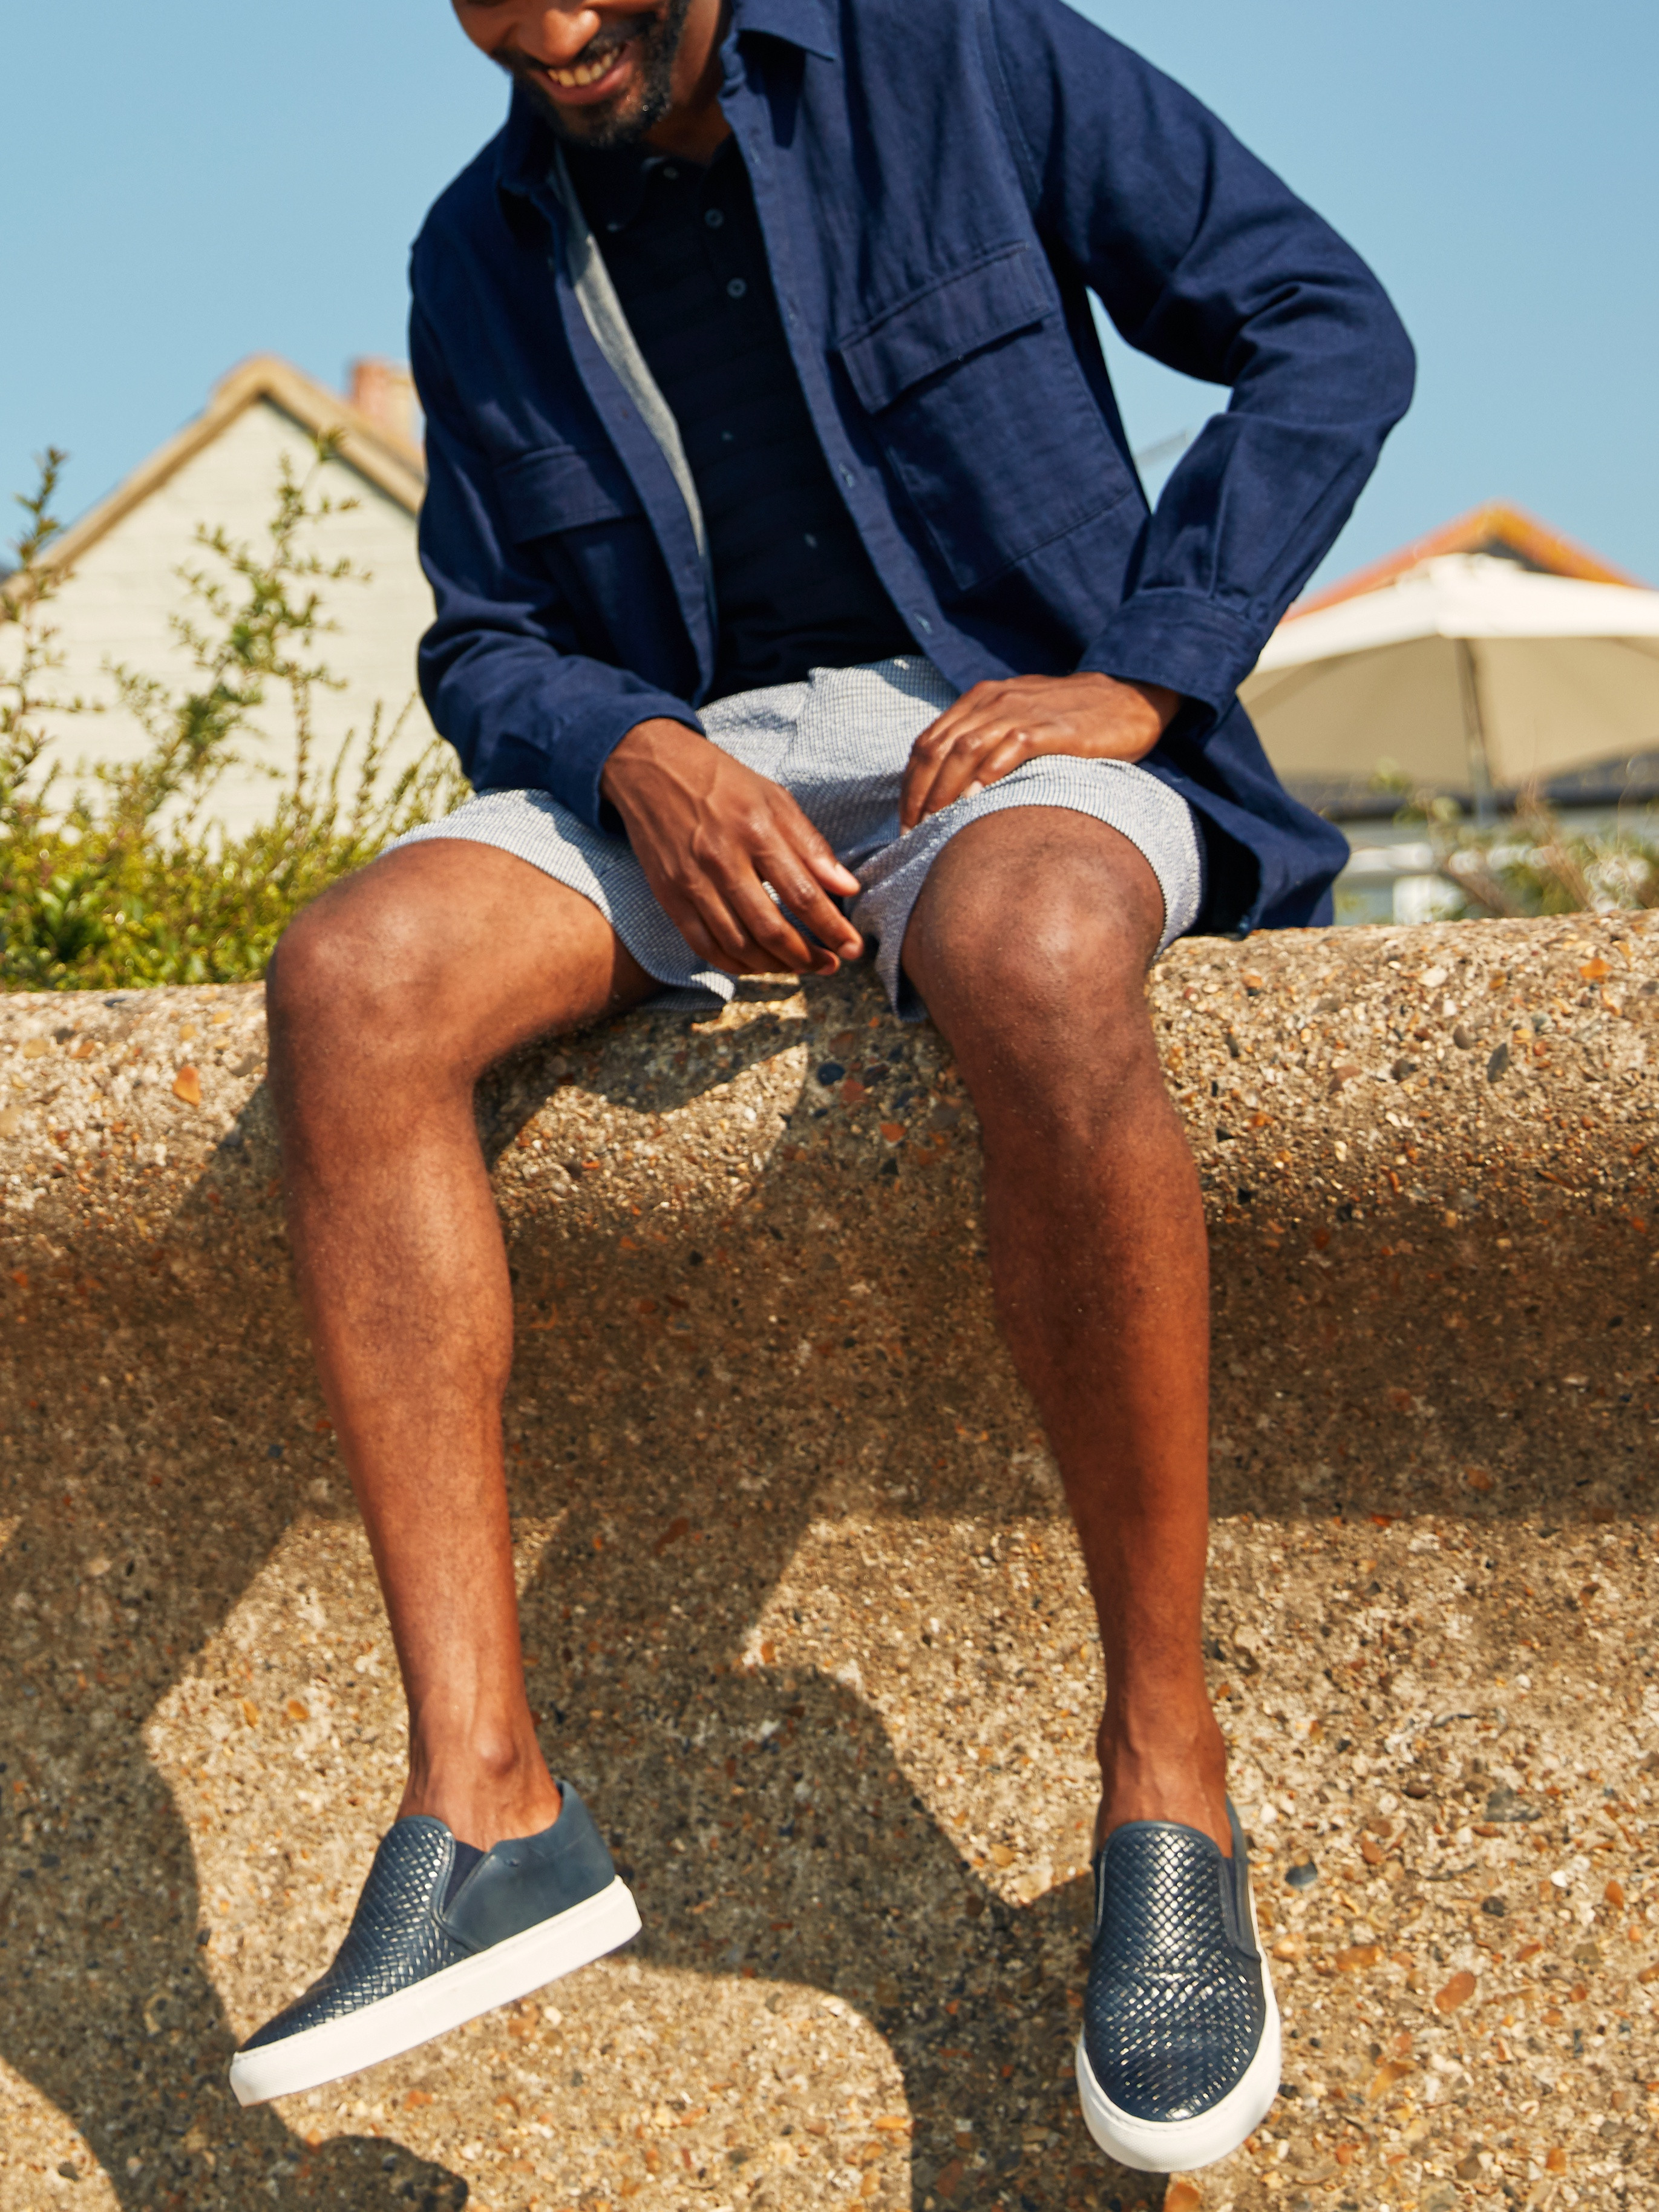 Men's outfit idea for 2021 with utility jacket, denim shirt, coloured / patterned shorts. Suitable for spring and summer.